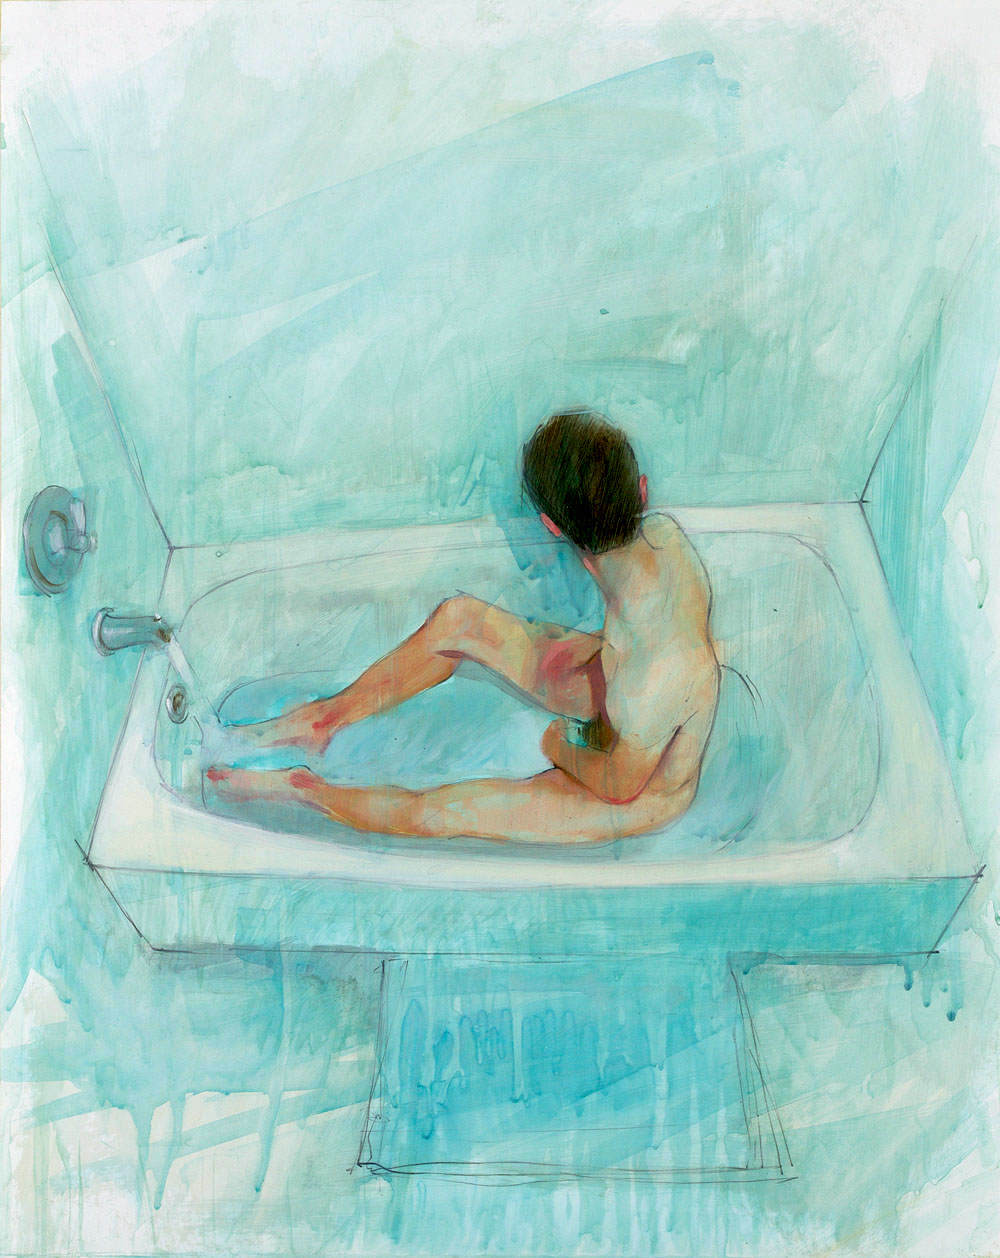 Bath Study No. 1   20 x 16 inches  oil on TerraSkin - SOLD